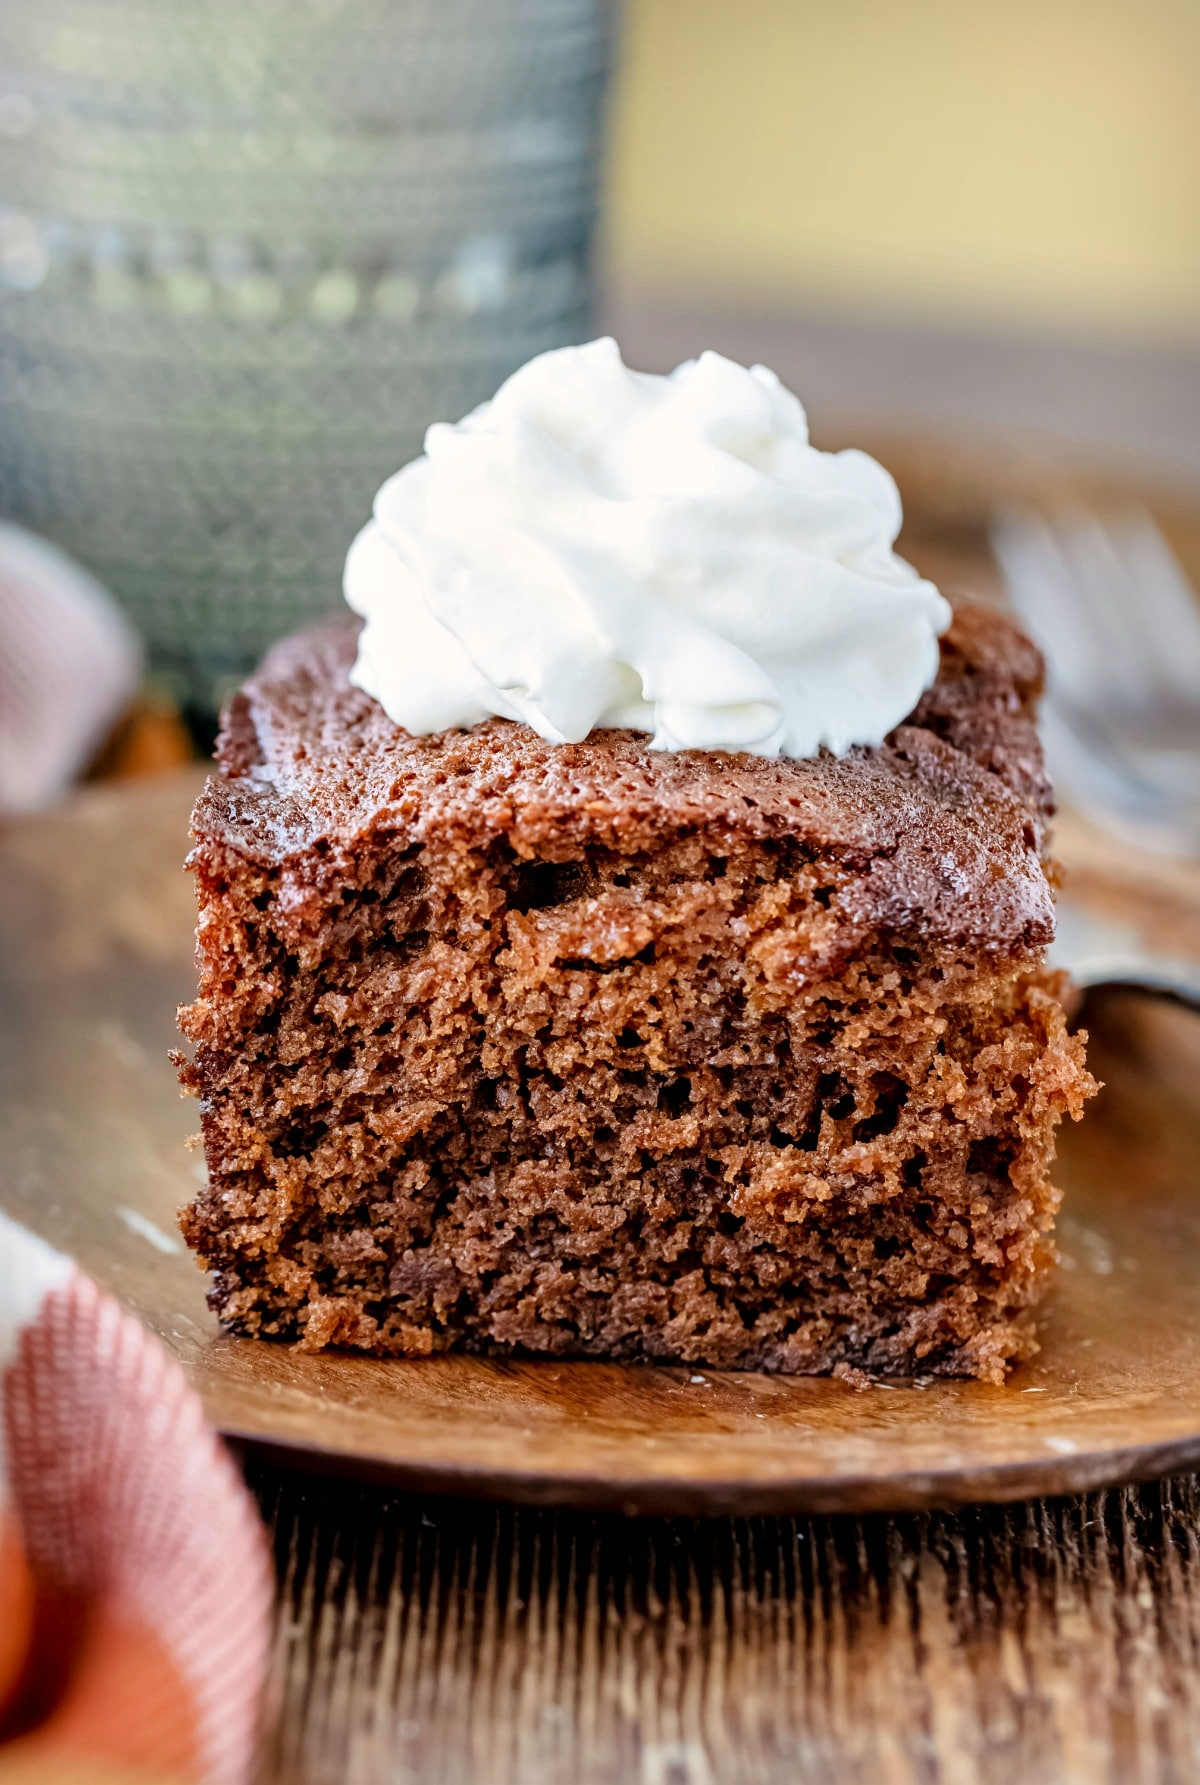 slice of gingerbread topped with whipped cream